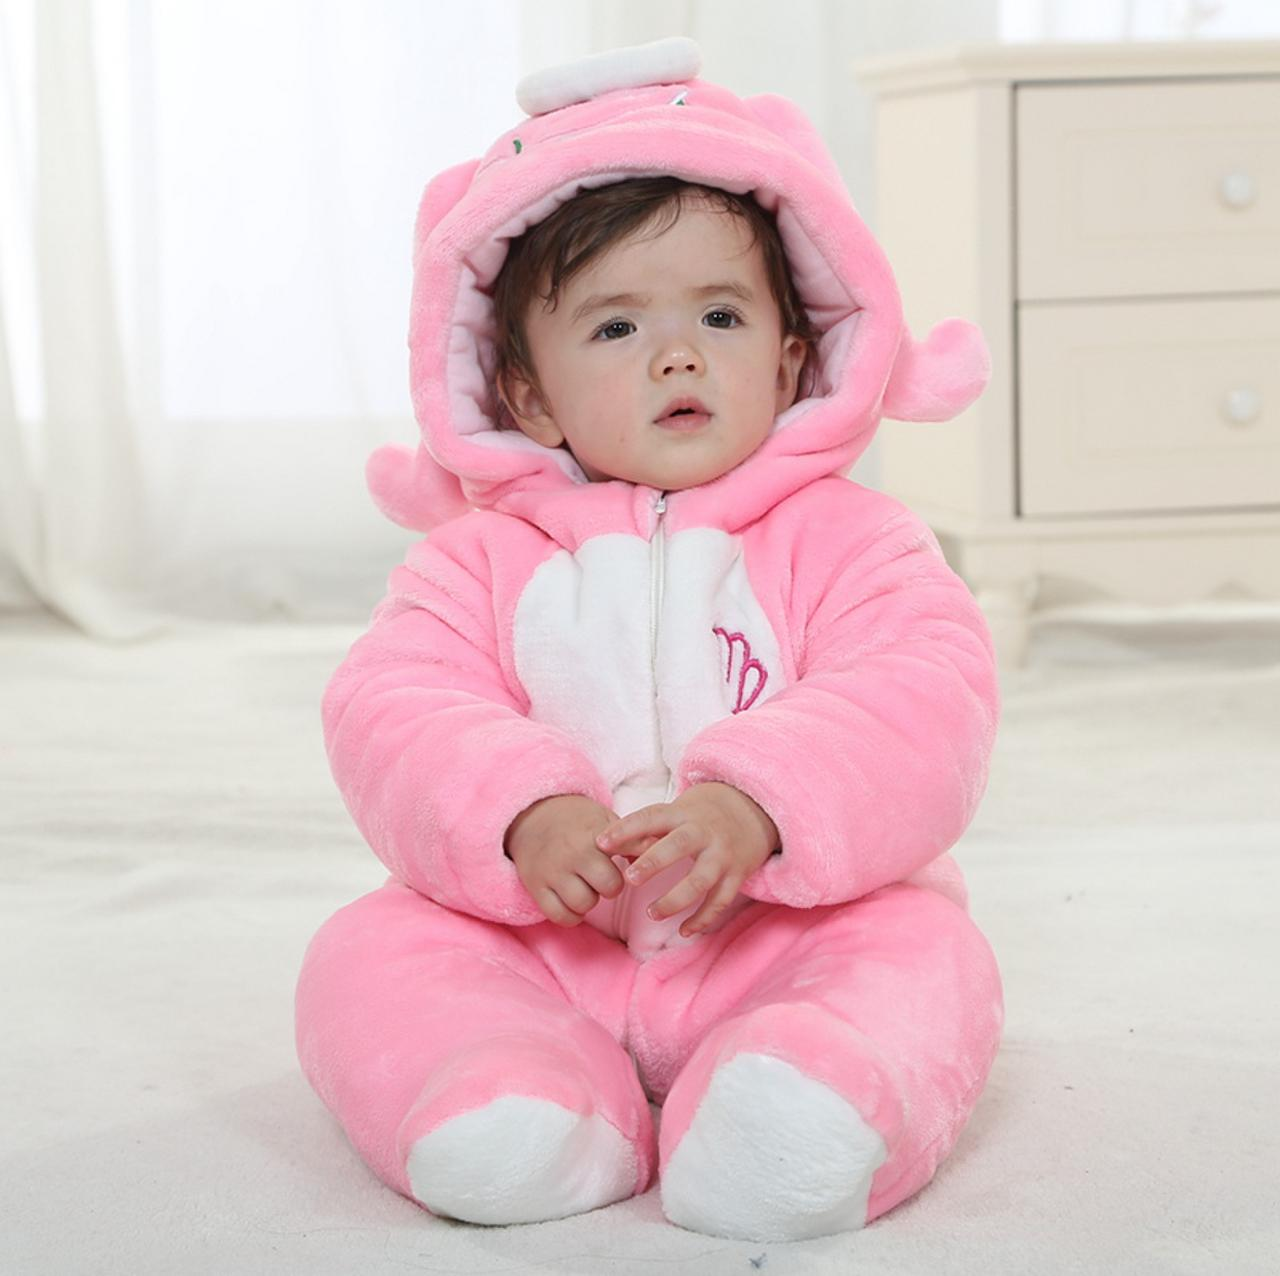 b68f2f0c9 Virgo Winter Type Leopard Unisex Playsuits Romper Toddlers Jumpsuit ...